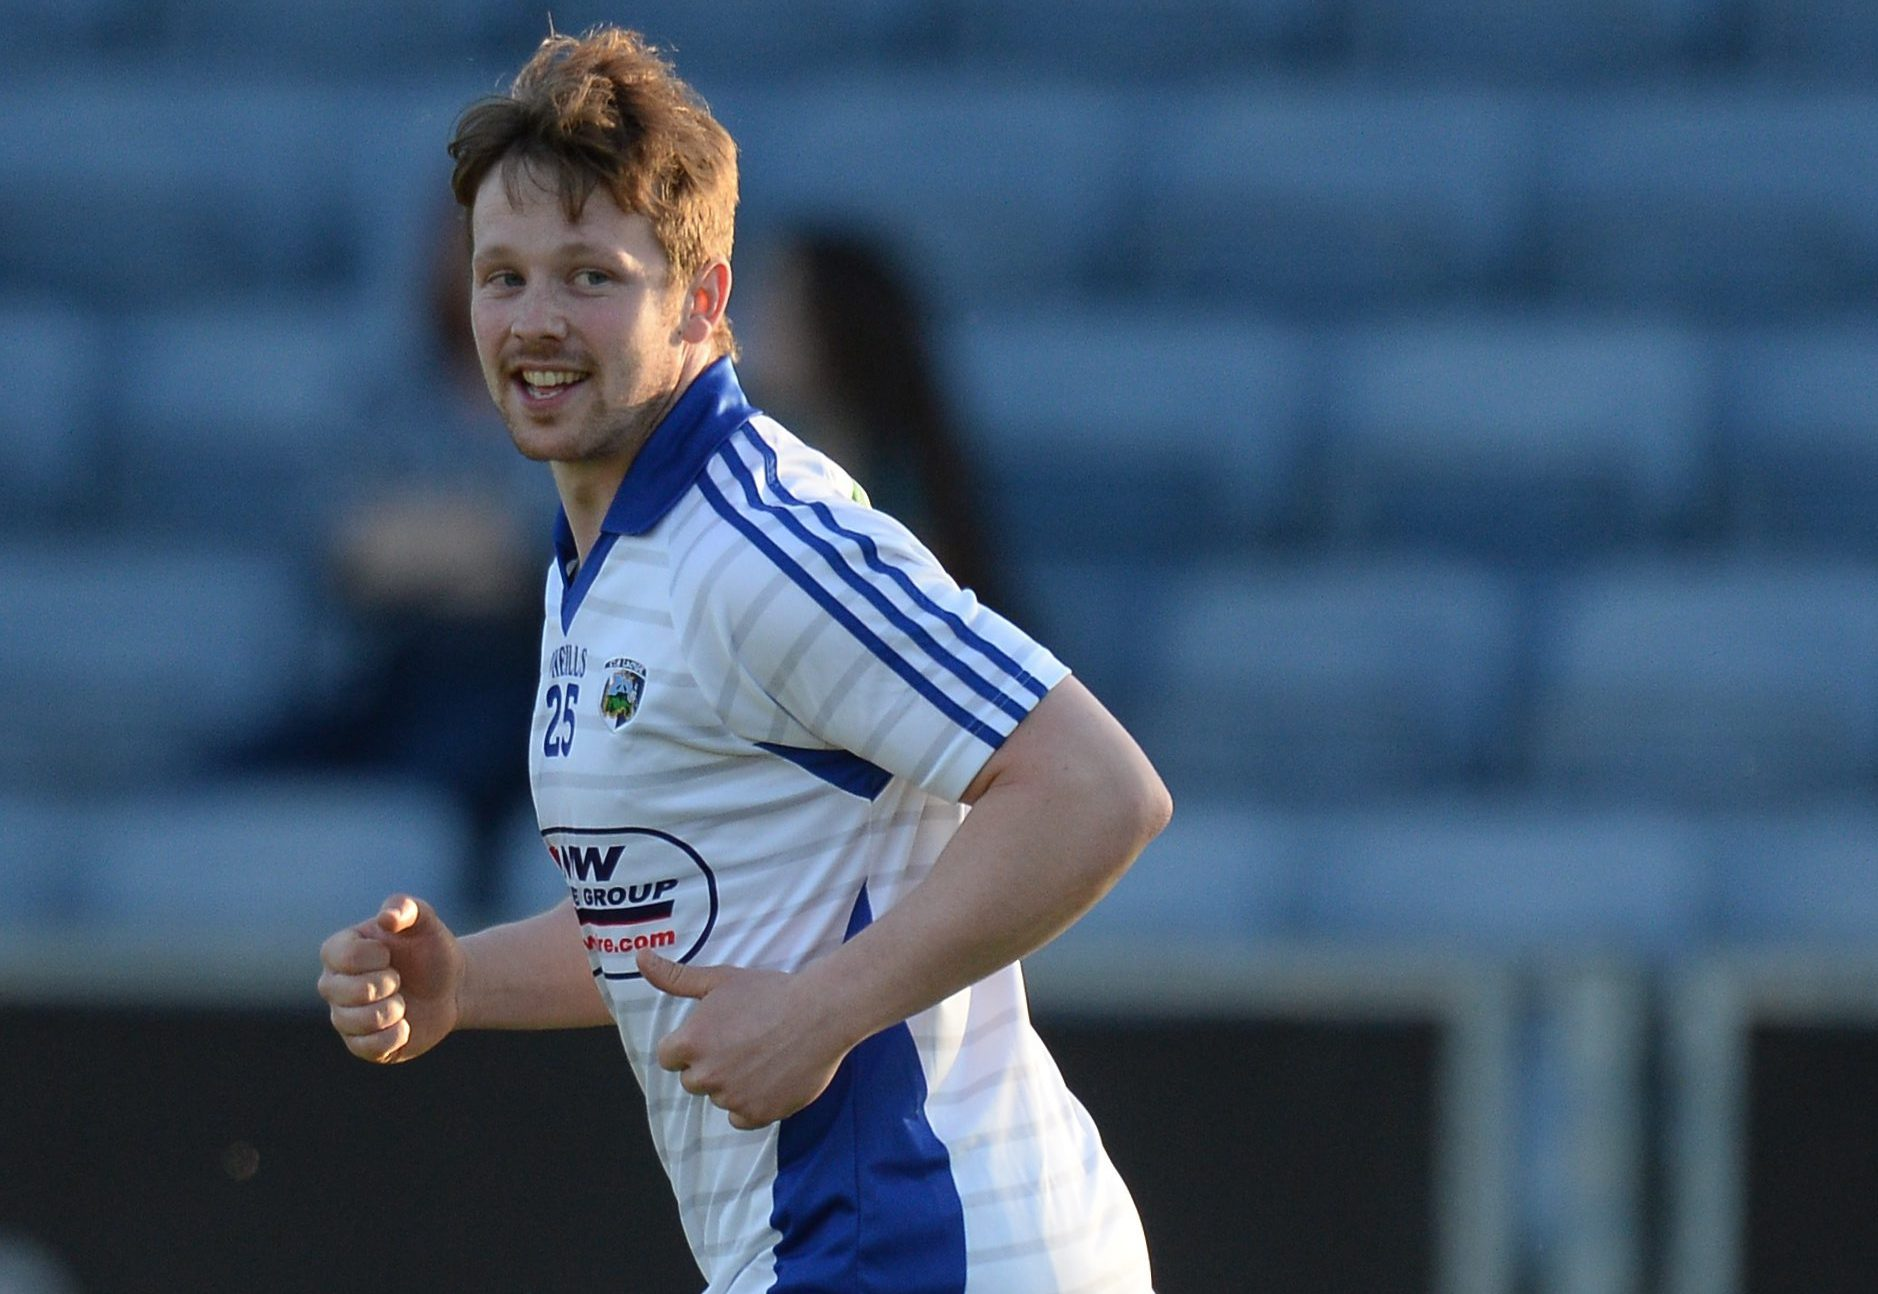 Ruairí O'Connor was in scintillating form for Timahoe tonight